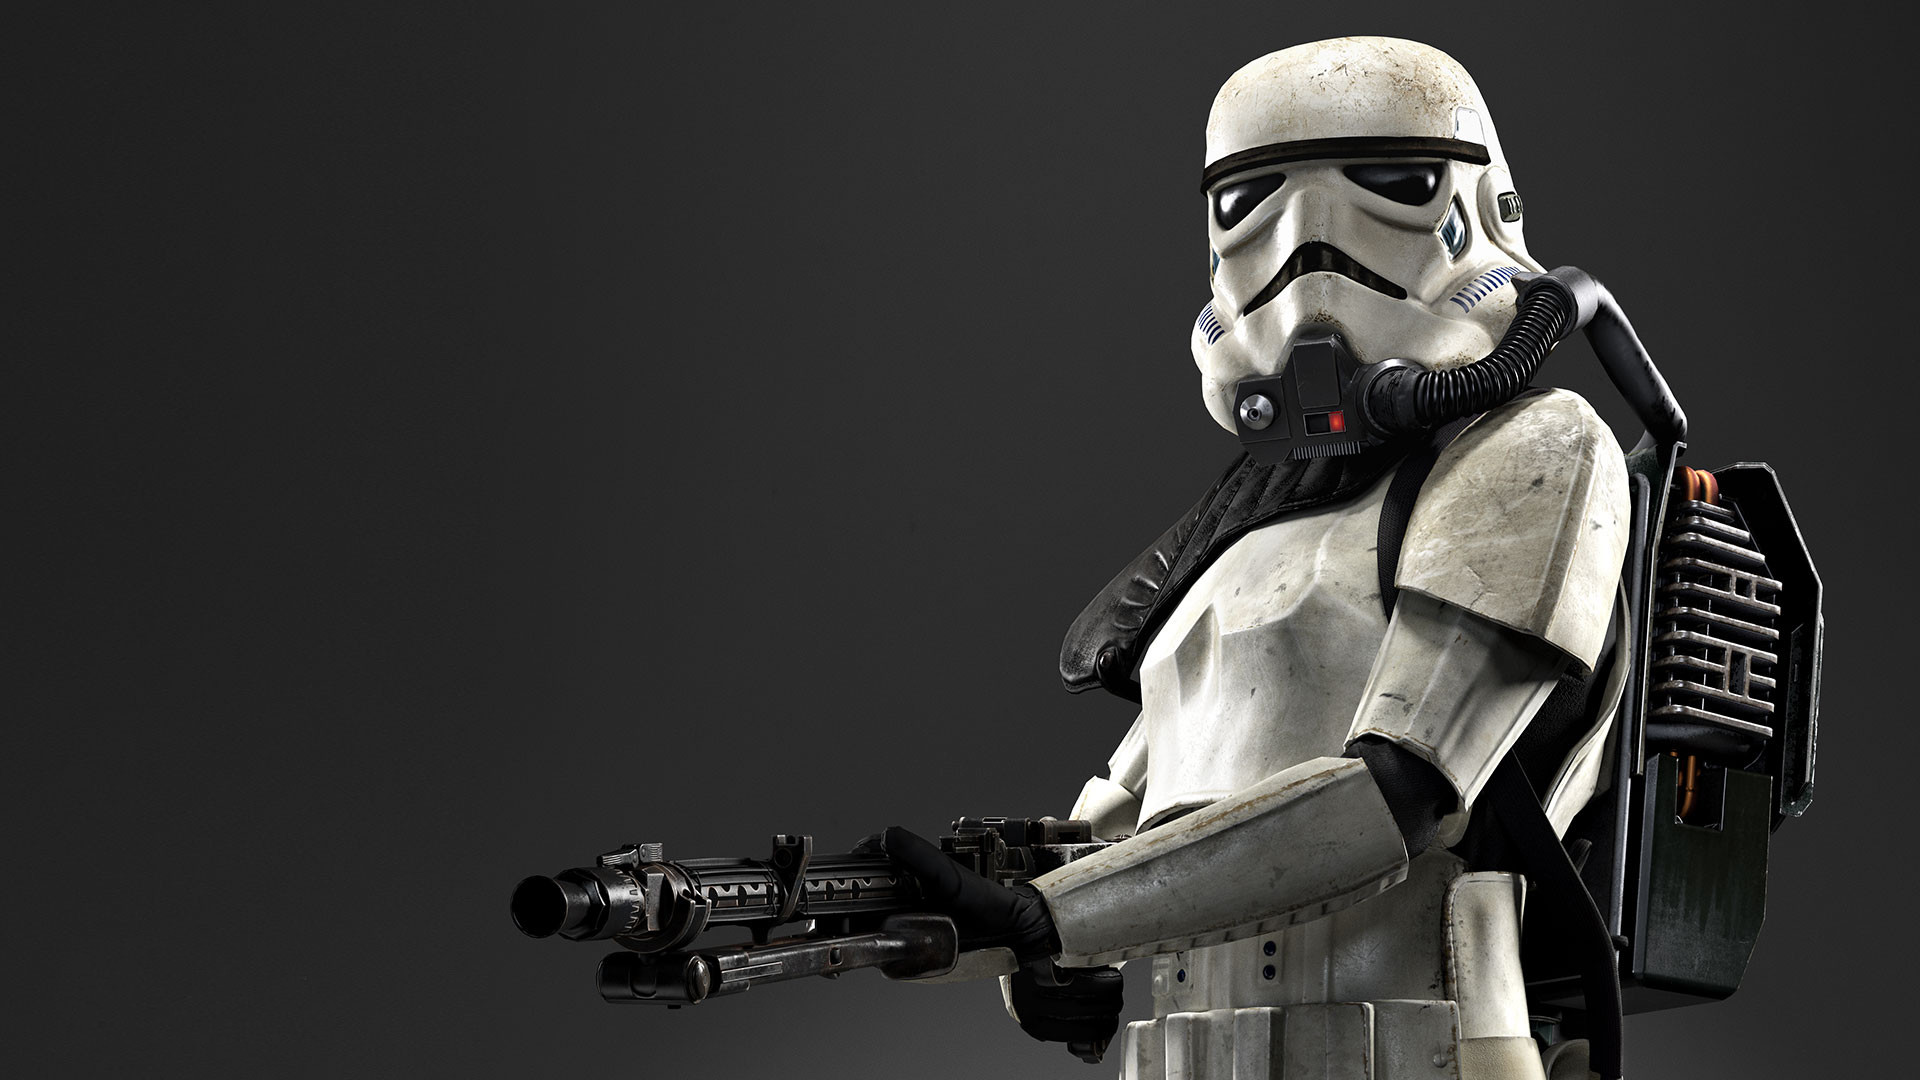 1920x1080 Star Wars Battlefront Wallpapers w/o Icons